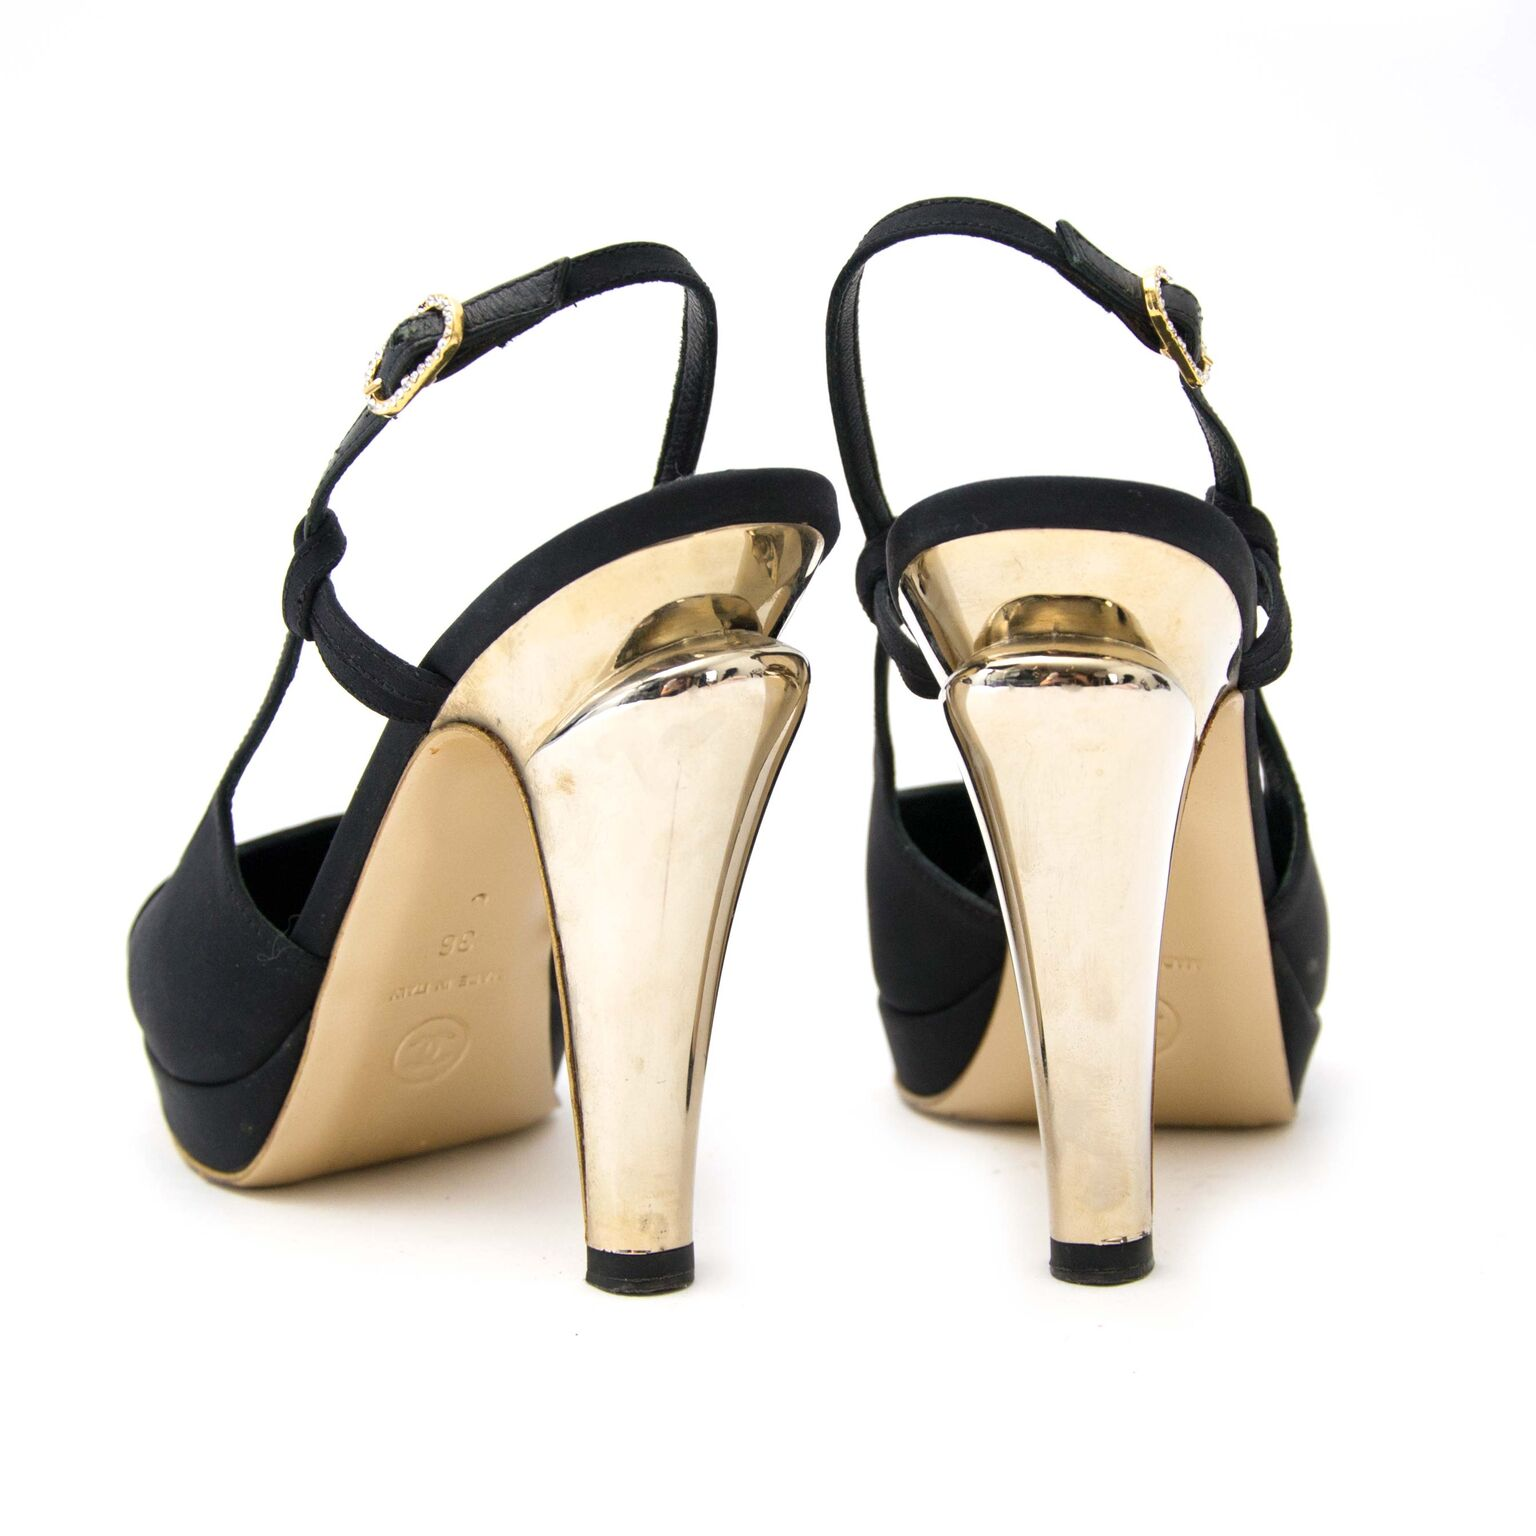 Buy now beautiful Chanel pumps on Labellov.com